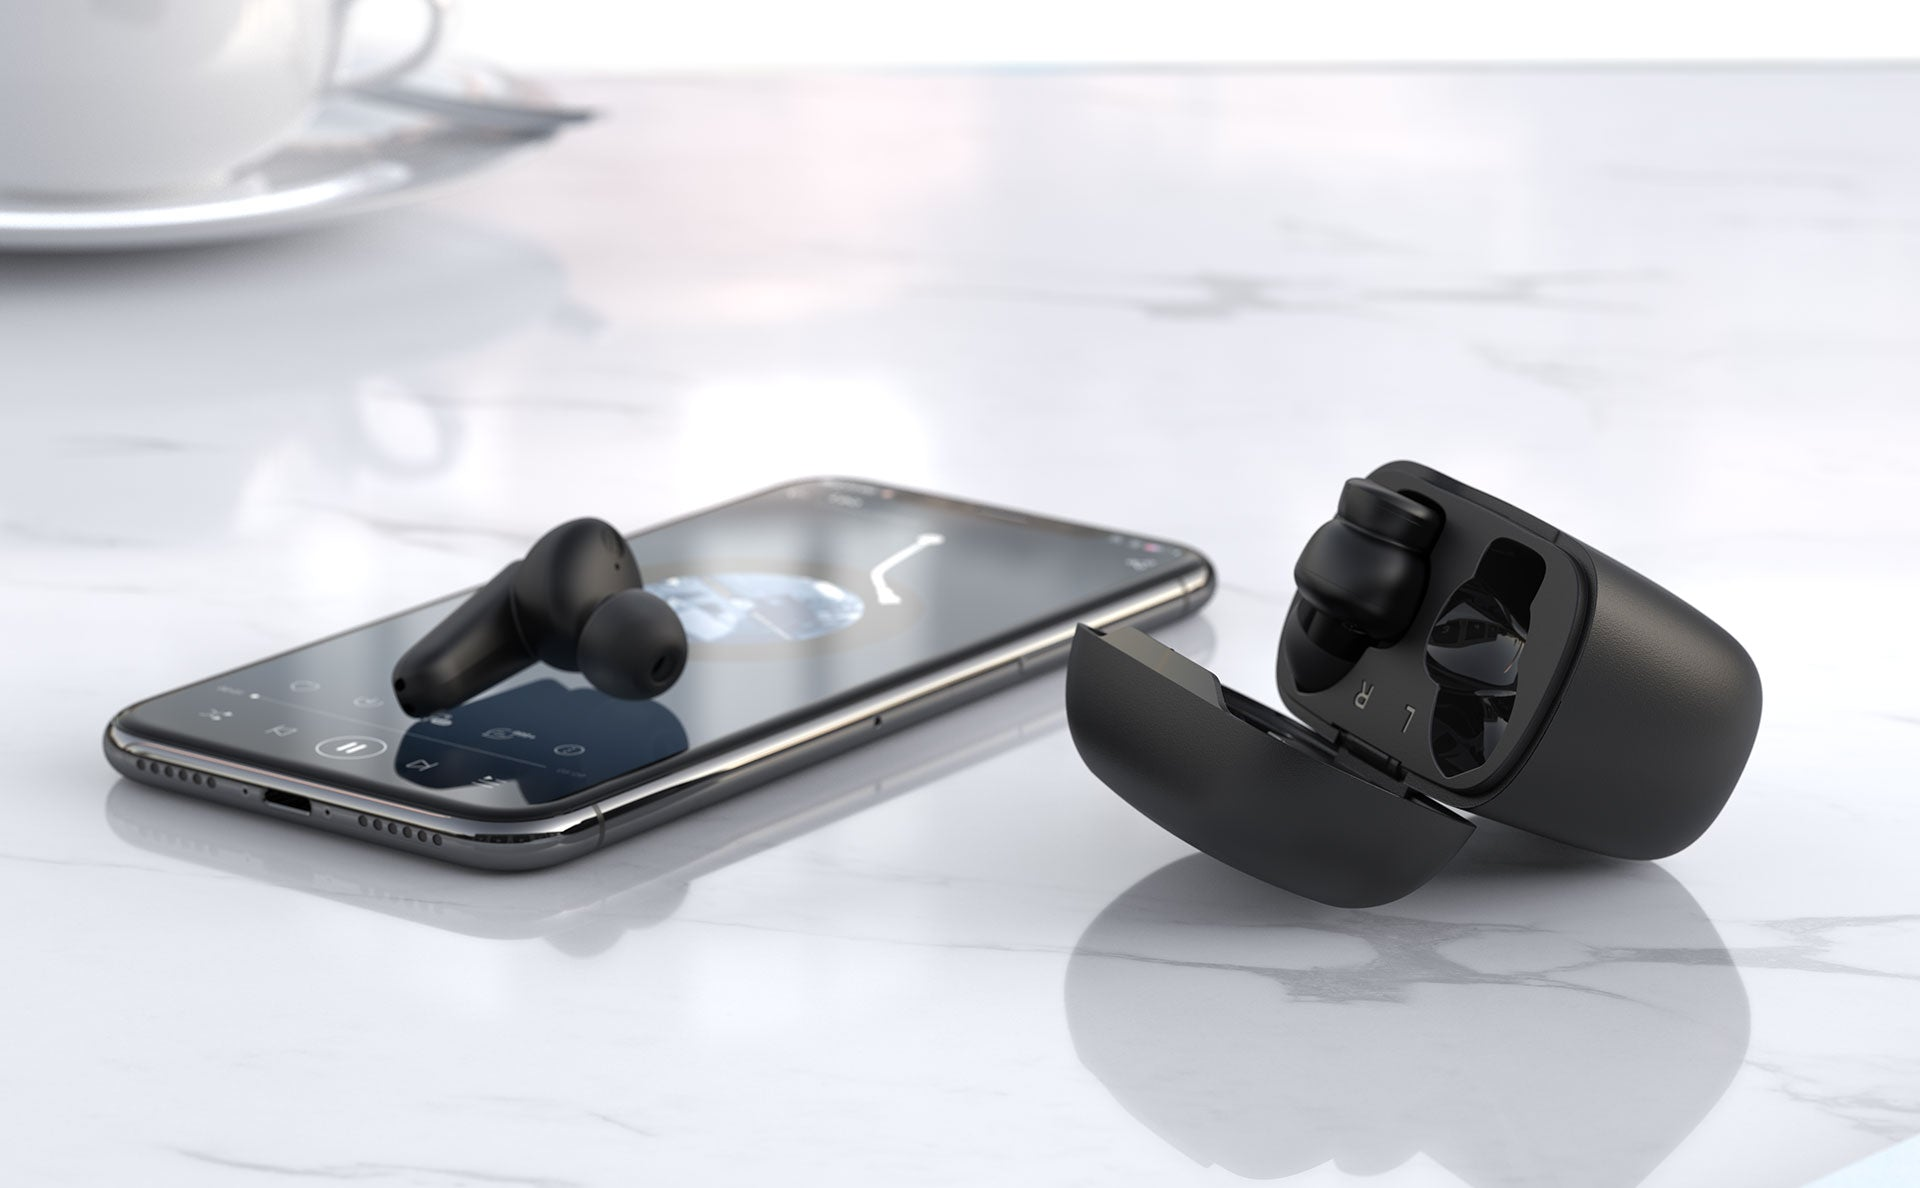 ENACFIRE H500 Wireless Earbuds - real shoot